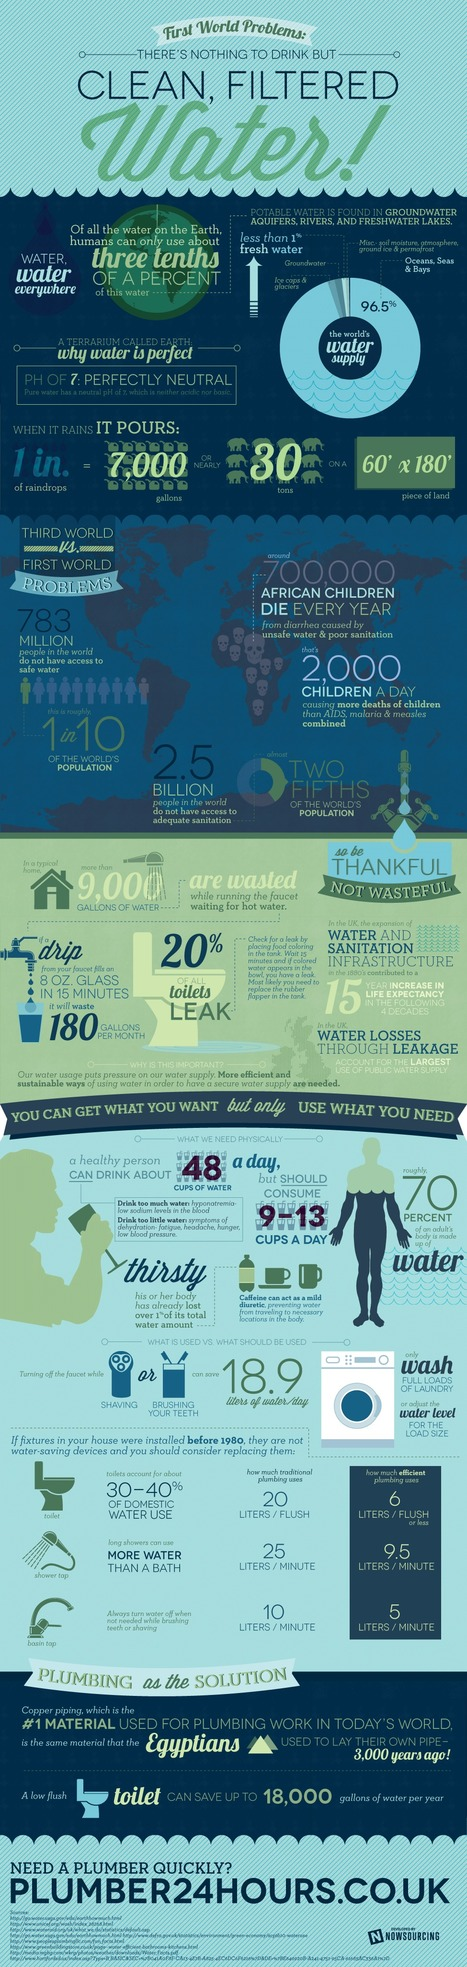 Water: Global facts + statistics [infographic] | GOSSIP, NEWS & SPORT! | Scoop.it